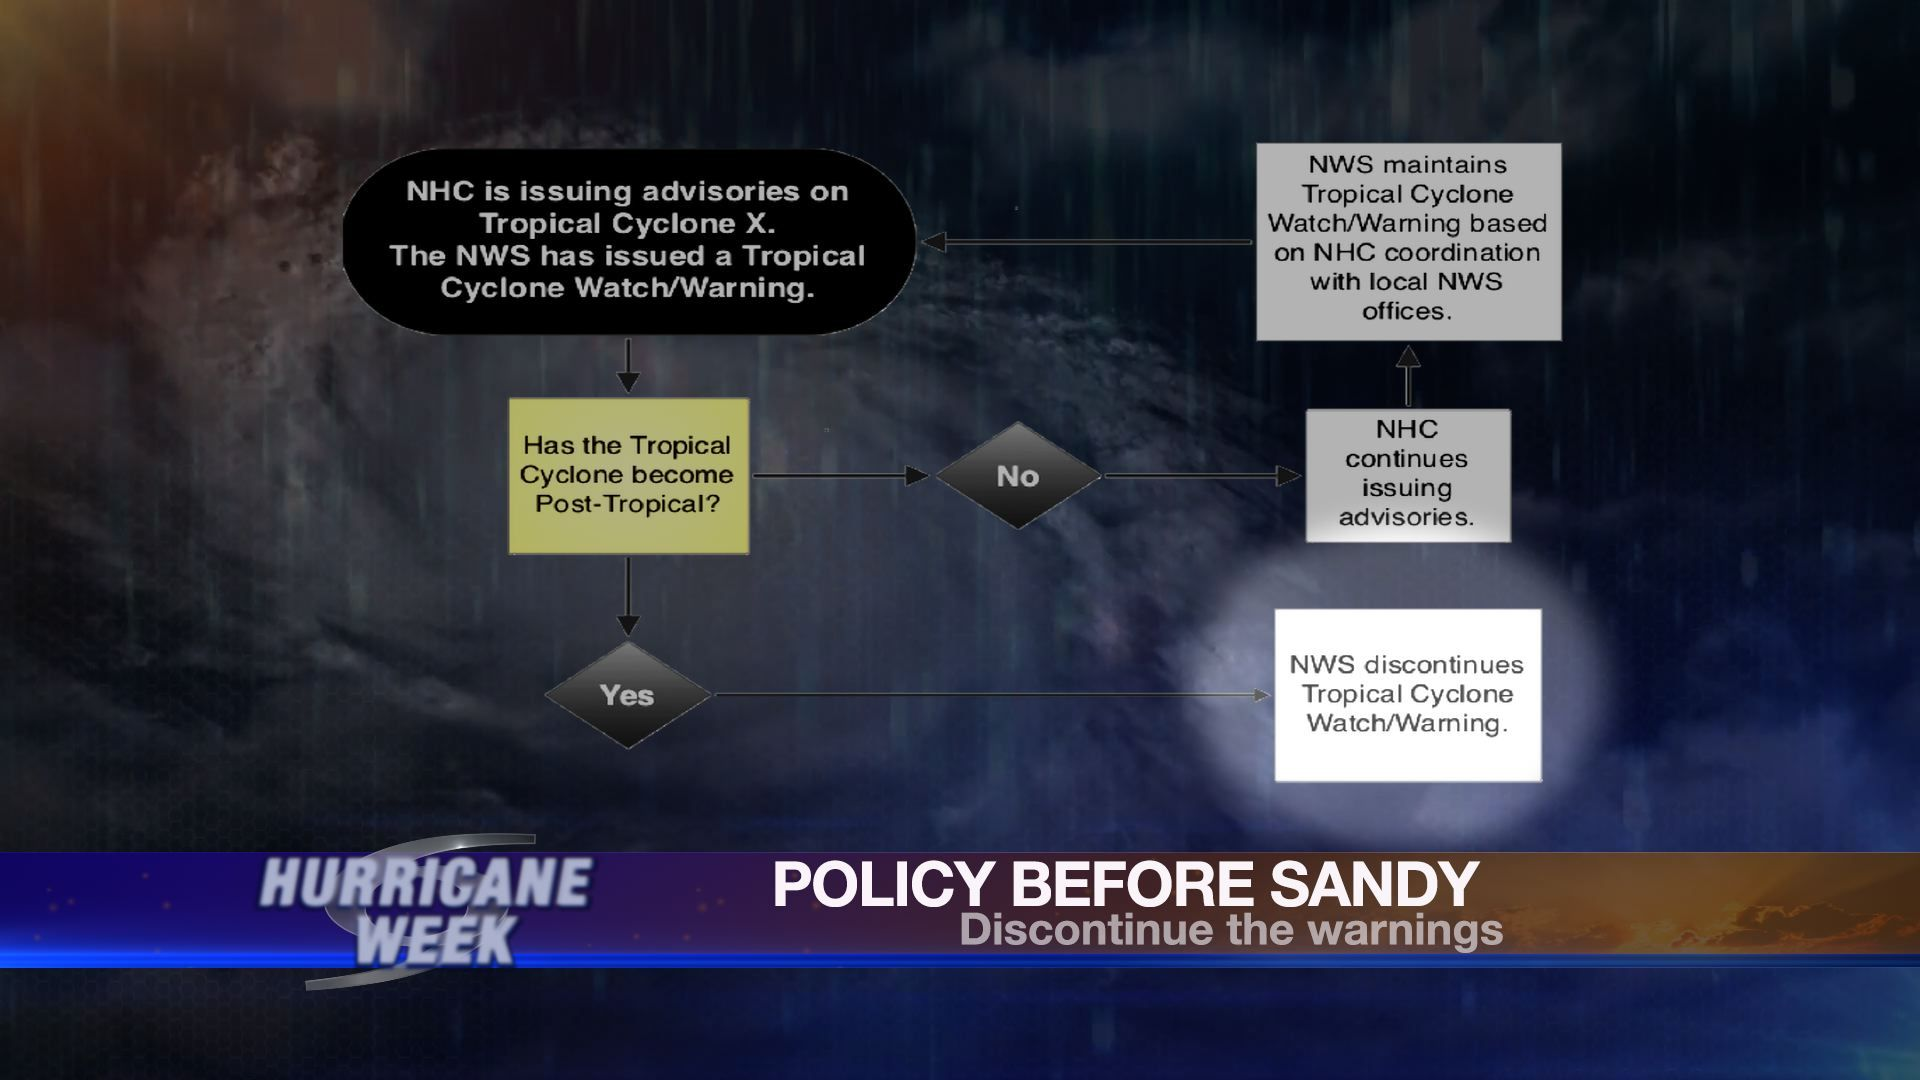 Policypresandy Jpg 1920 1080 Previous Policies From Noaa National Oceanic And Atmospheric Administration Dictated A Dis Hurricane Hurricane Watch